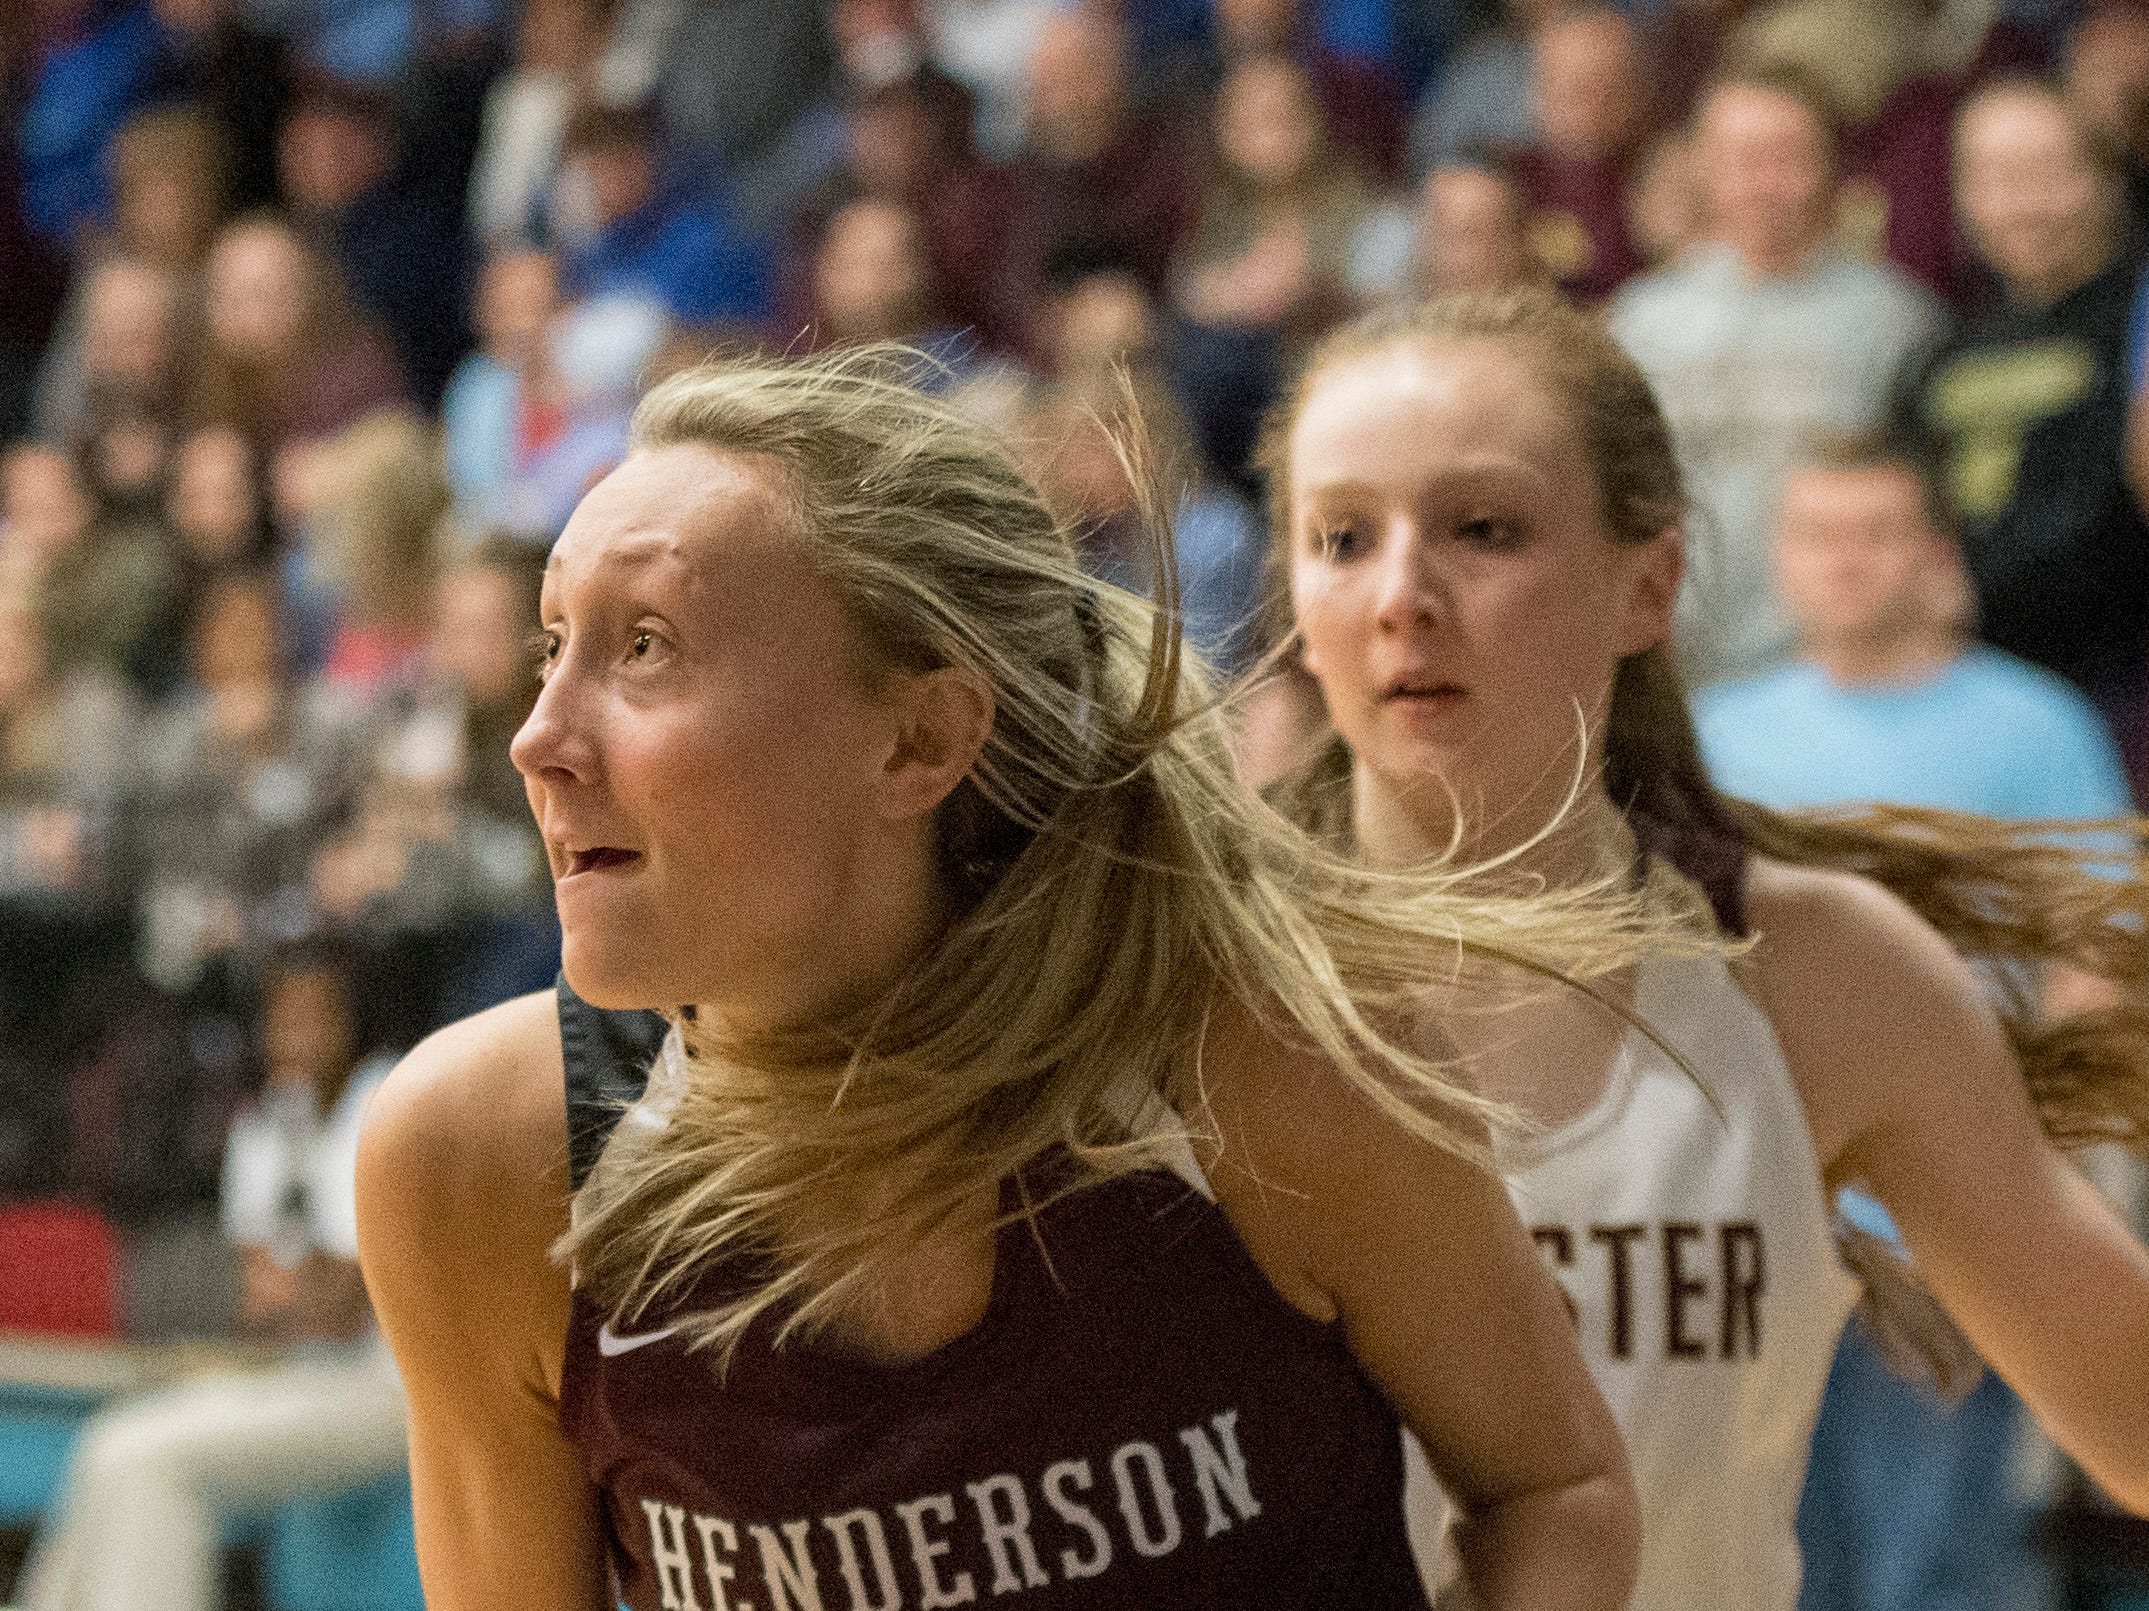 Henderson County's Alyssa Dickson (15) takes a shot during the 2019 Sixth District championship game against the Webster County Lady Trojans at Union County High School Thursday, Feb. 21, 2019.